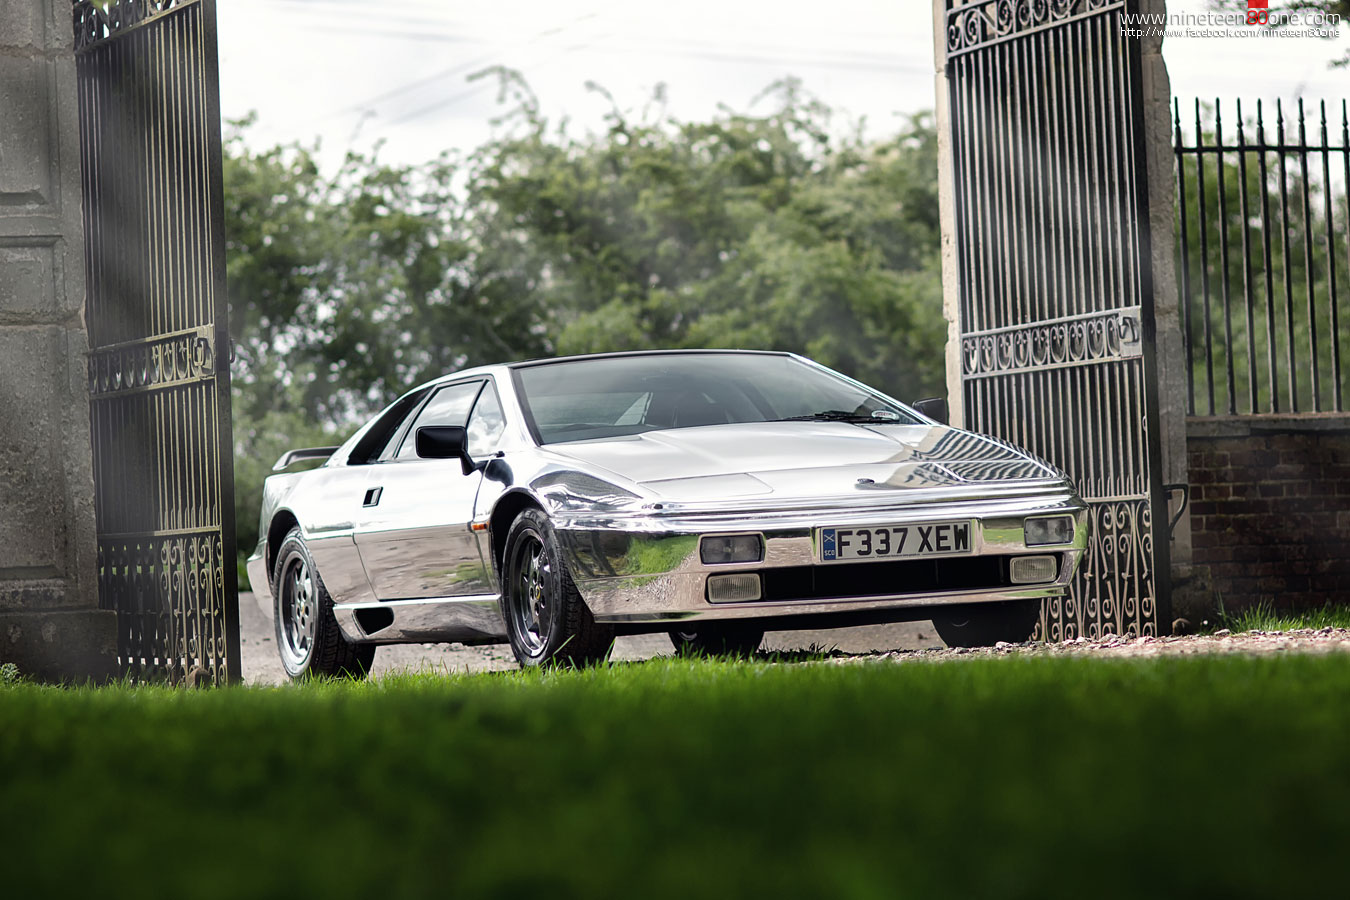 Lotus Esprit Chrome car